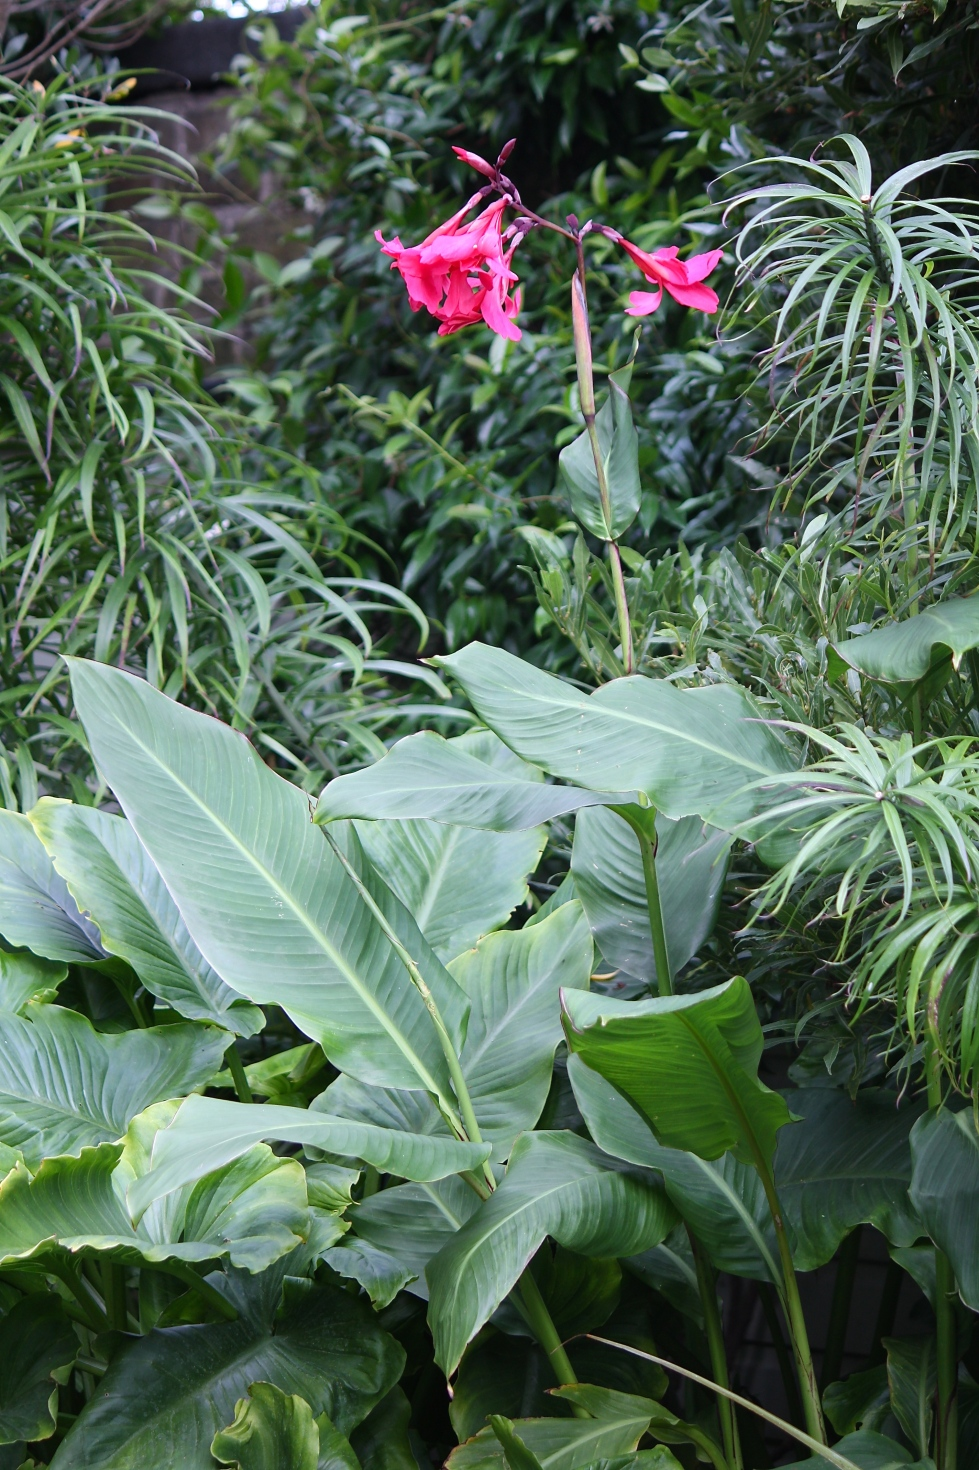 As the season progresses, the leaves of Canna x ehemanii expand to banana-like proportions.